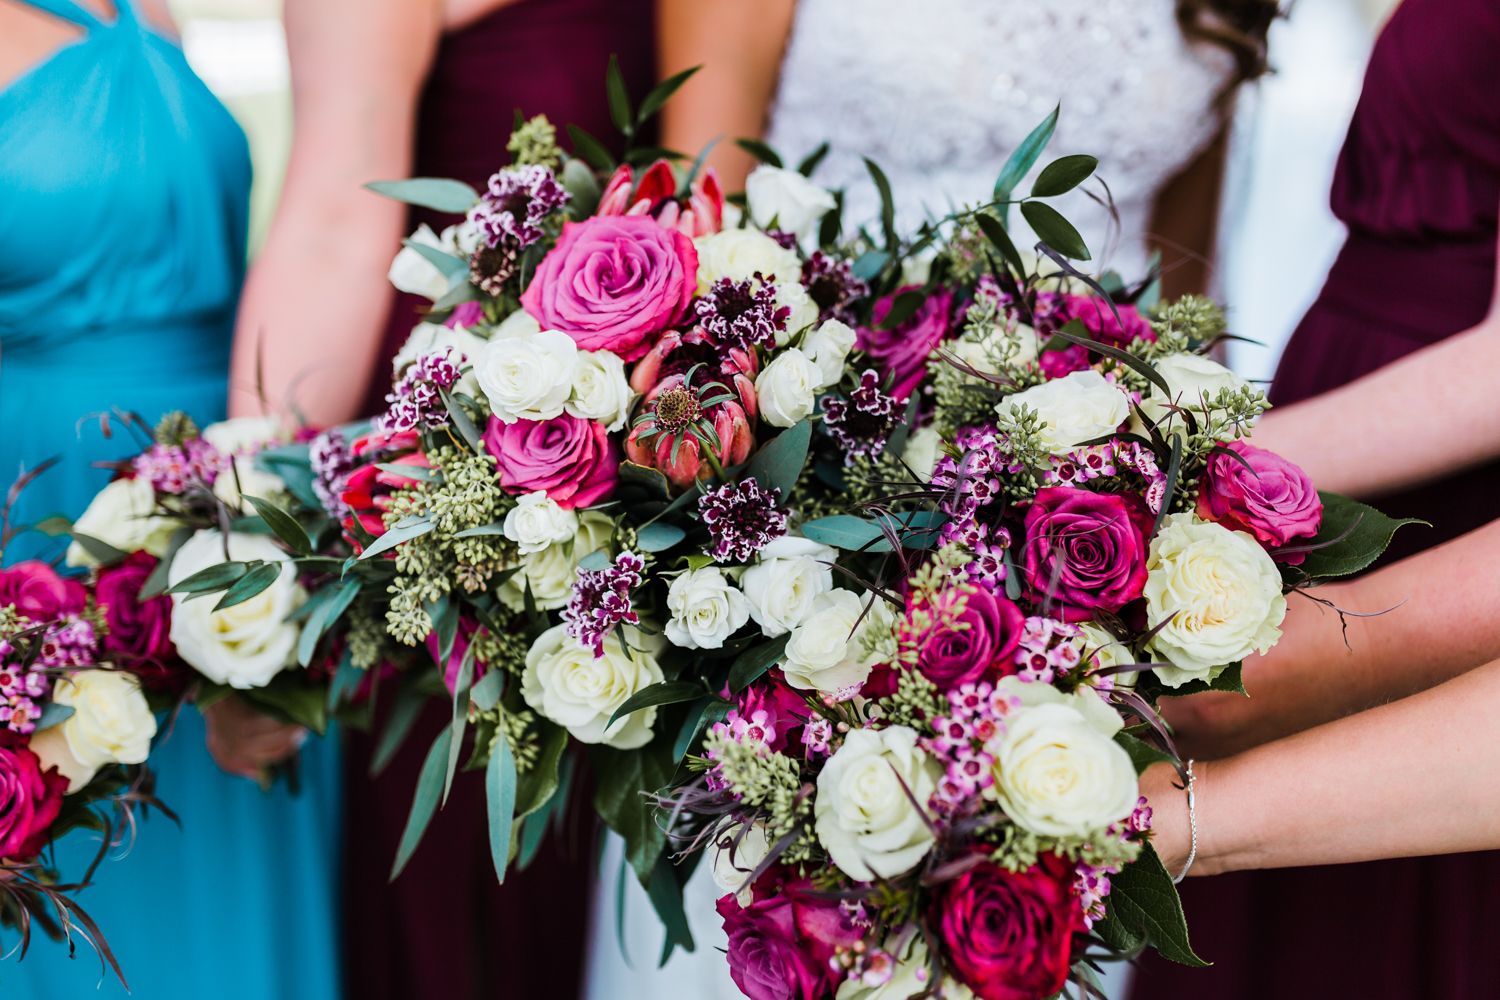 pink, red, white, and green wedding bouquets in Maryland - DMV wedding photo and video